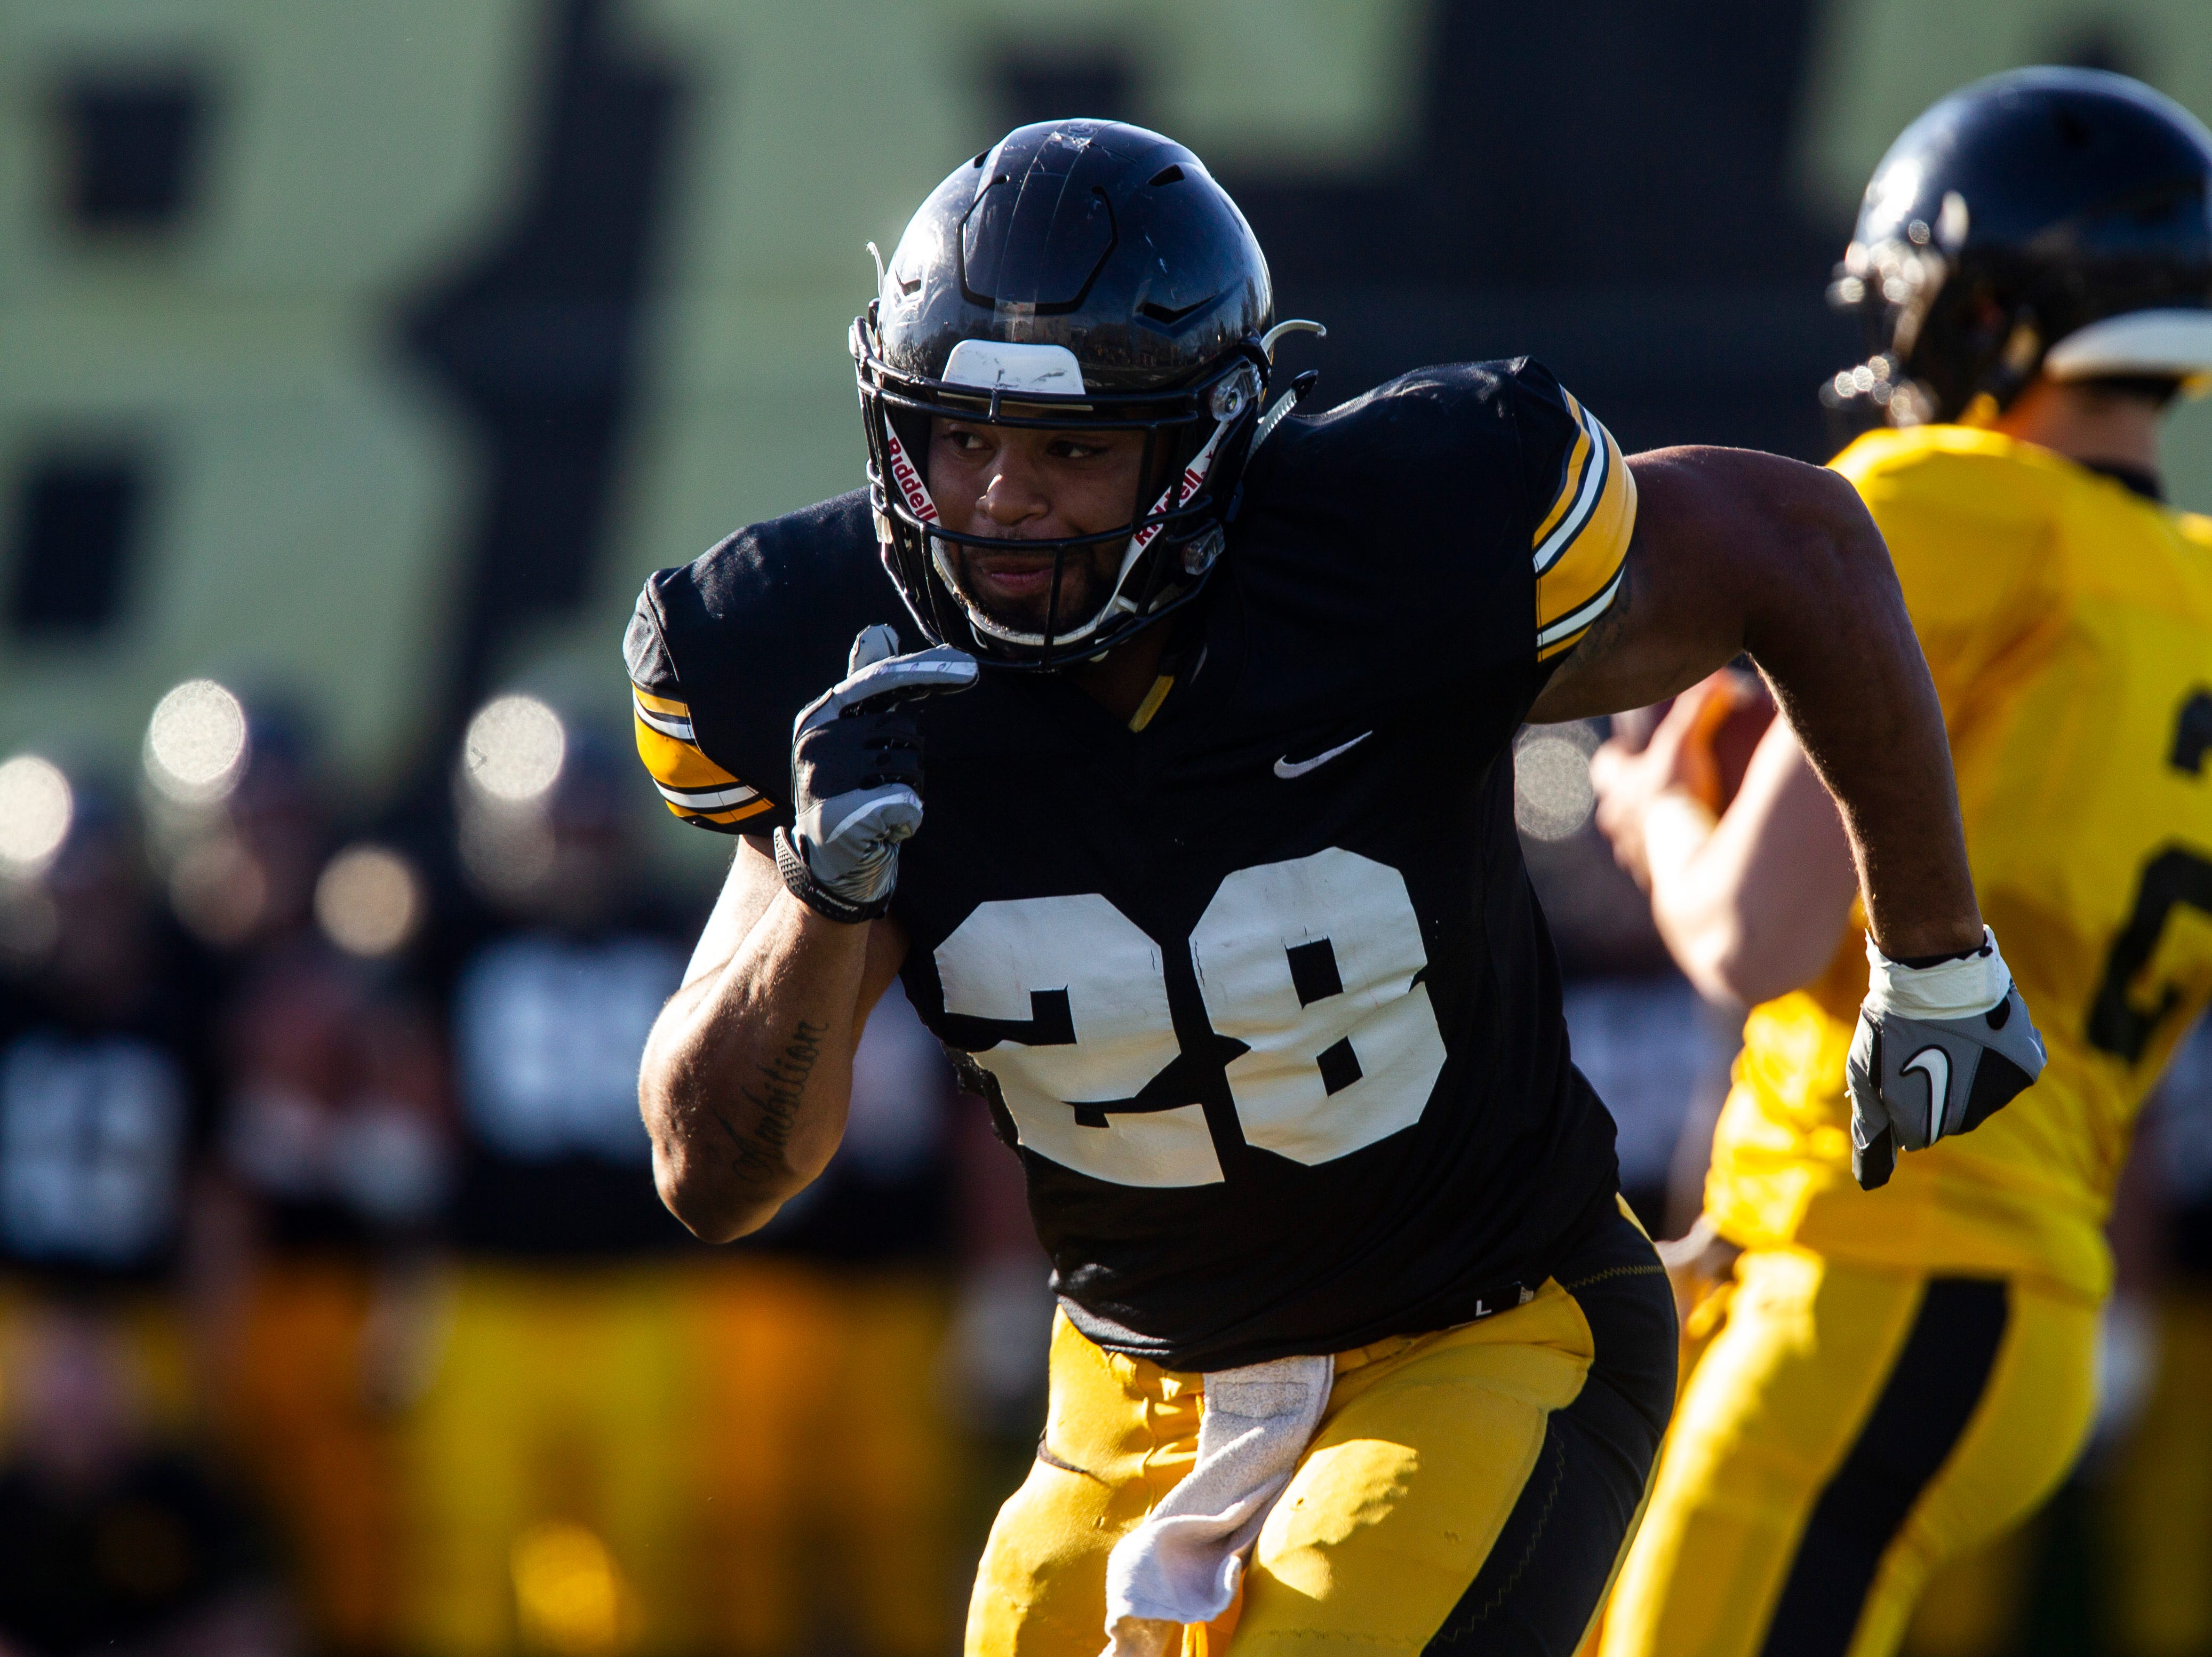 Iowa running back Toren Young (28) runs a route during the final spring football practice, Friday, April 26, 2019, at the University of Iowa outdoor practice facility in Iowa City, Iowa.